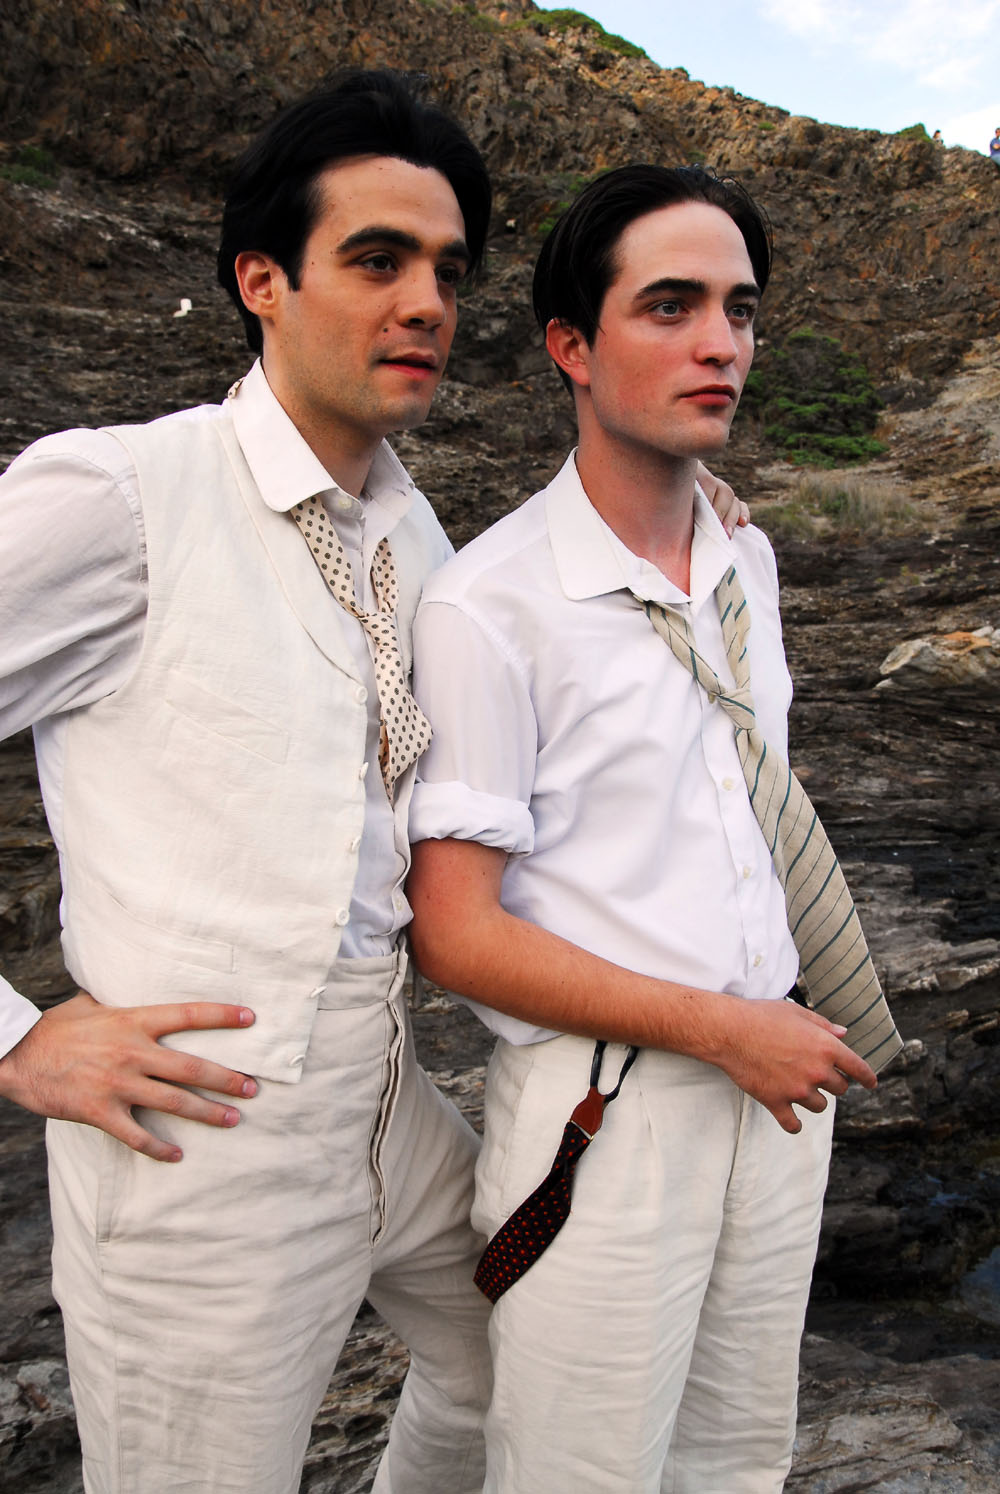 Javier Beltran, Robert Pattinson in Little Ashes